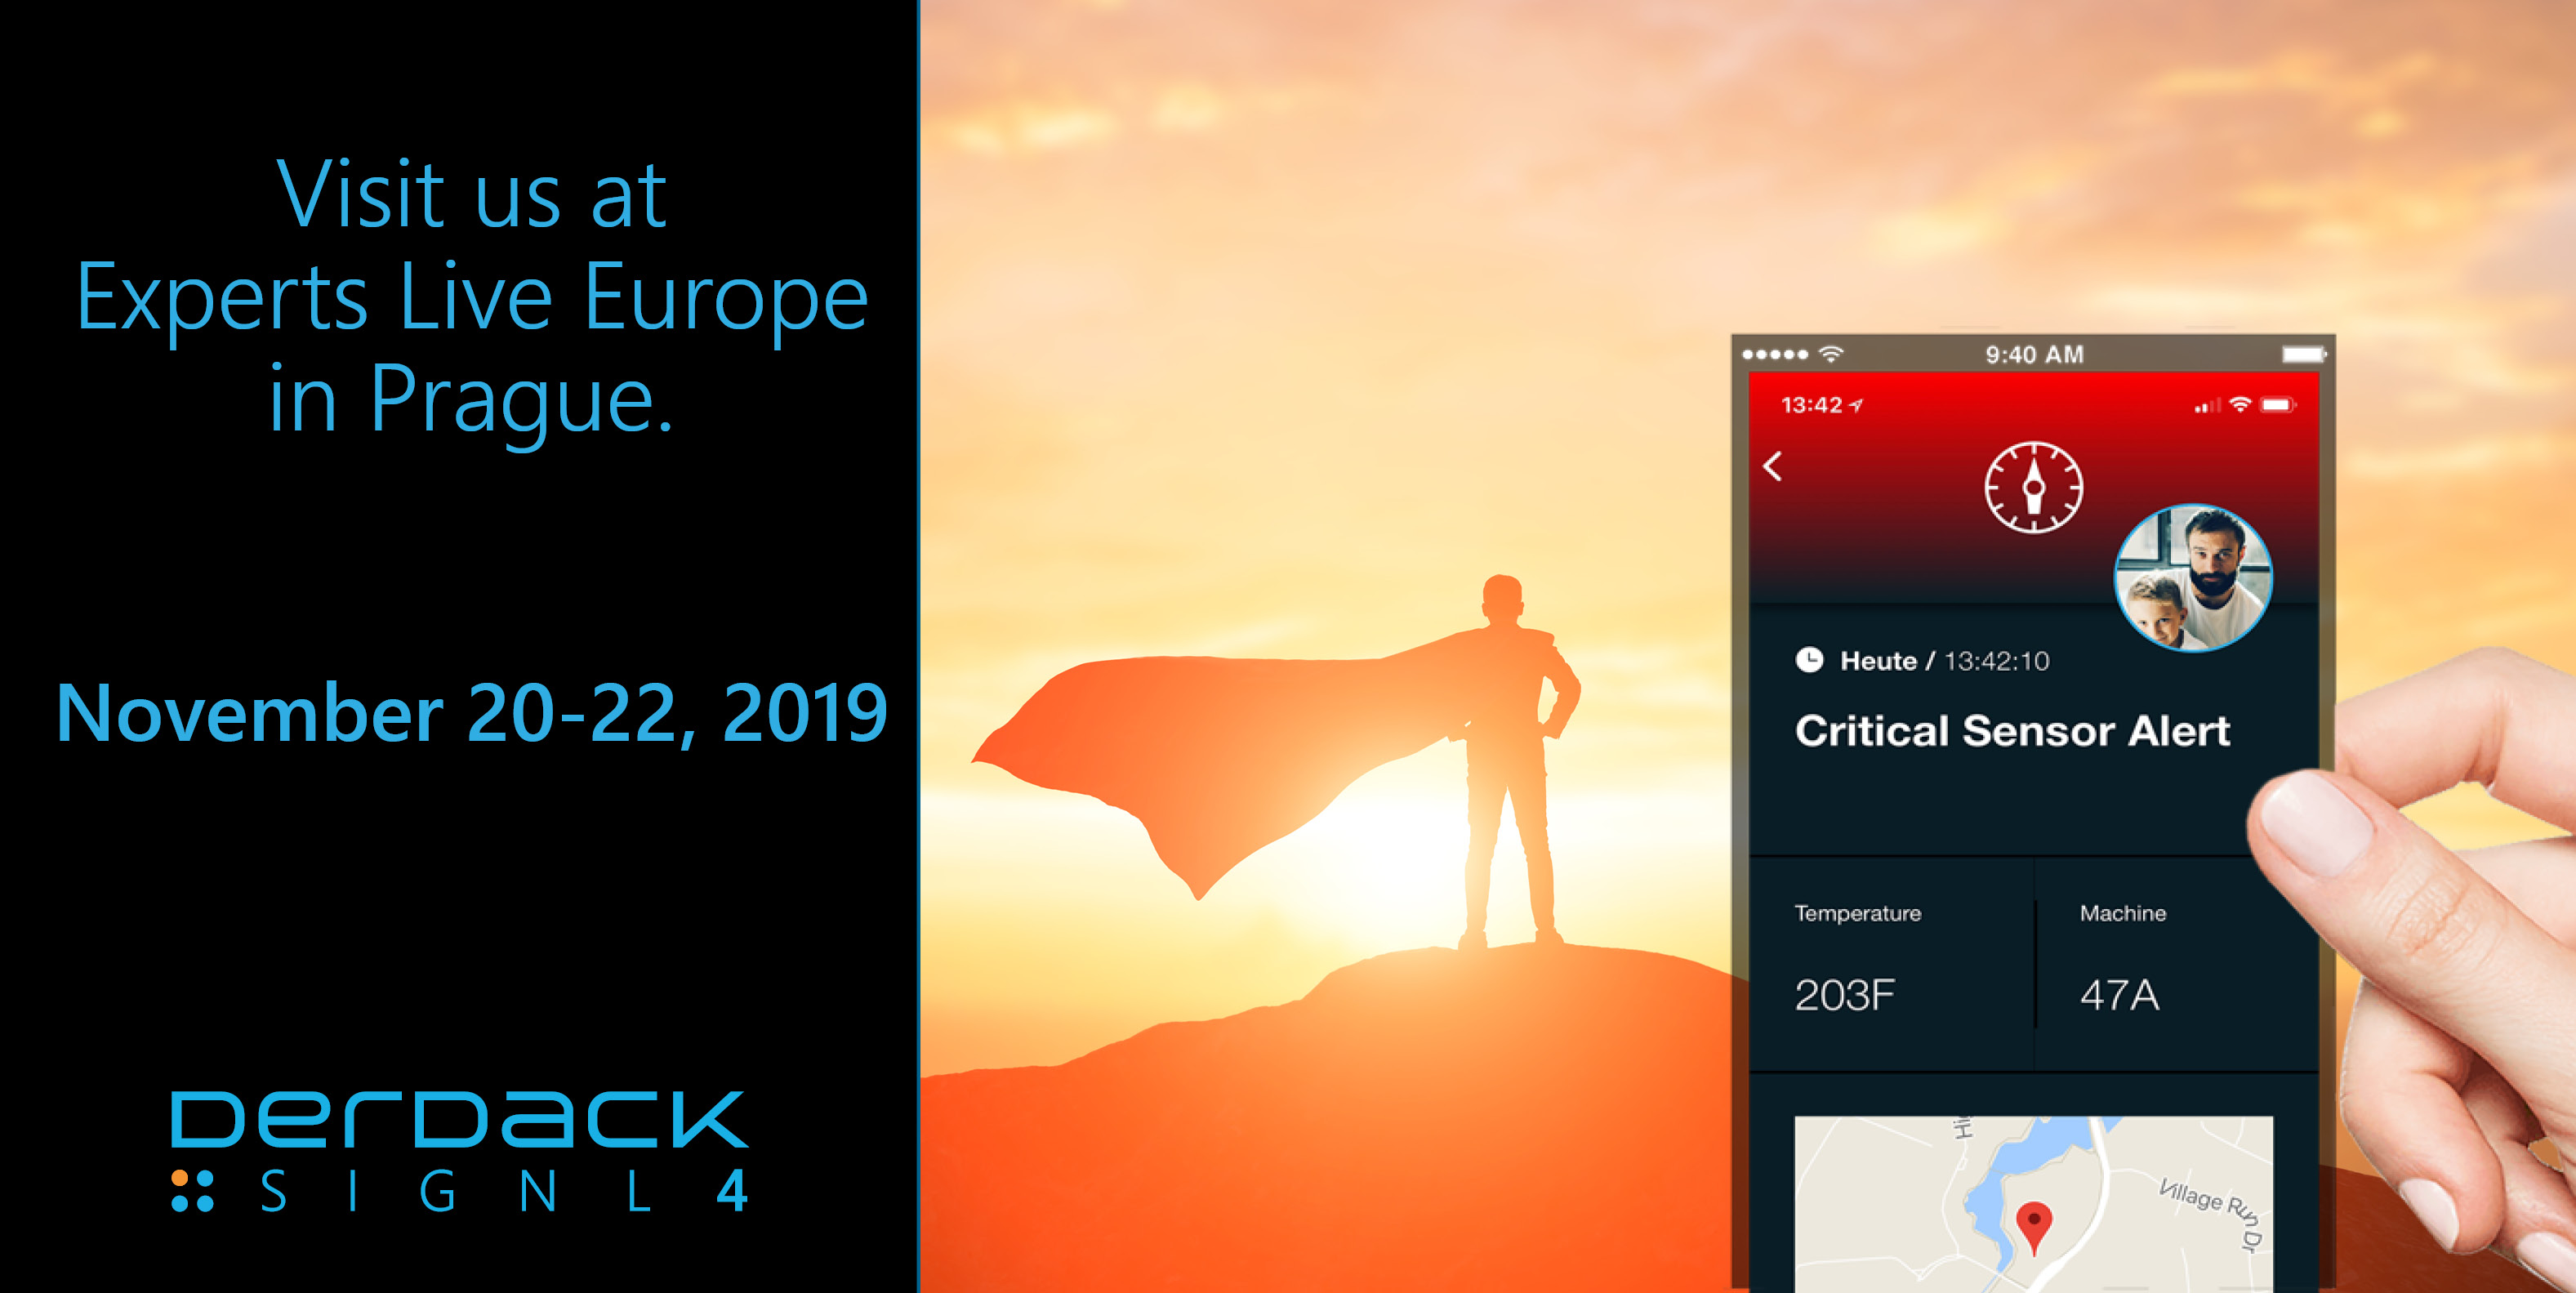 Experts Live Europe 2019